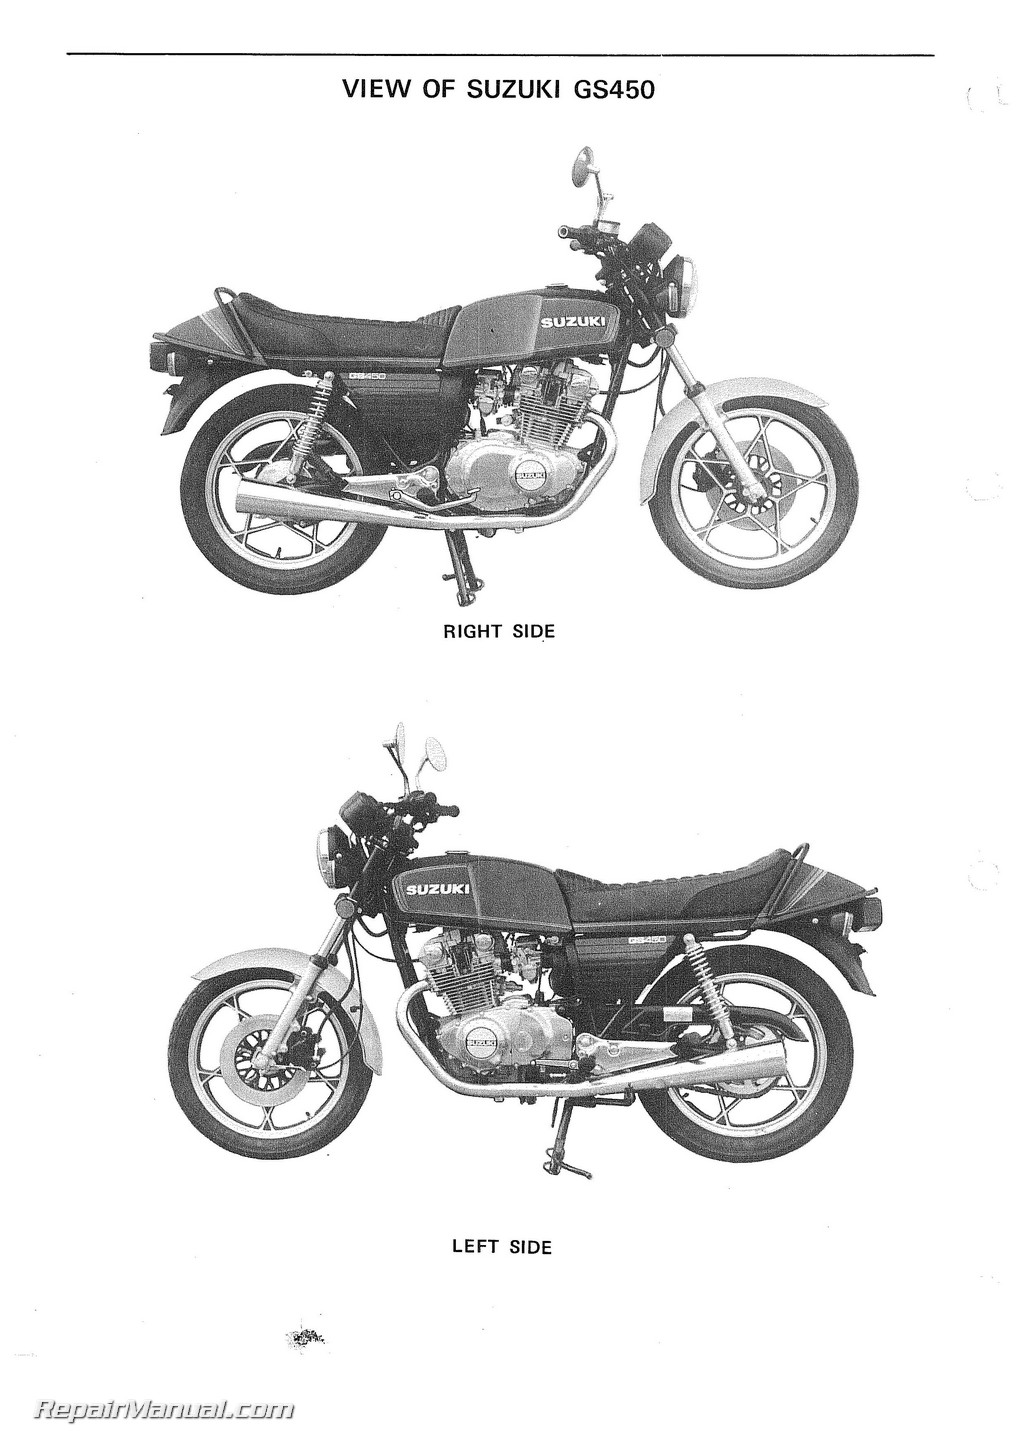 free wiring diagrams for honda motorcycles with Wiring Diagram For 1982 Honda 450 Motorcycle on Repair And Service Manuals together with T12629878 Adjust carburetor mixture screws 2001 also I Love These Types Of Diagrams in addition Victory Vegas Wiring Diagram together with Motorcycle Alarm System Wiring Diagram.